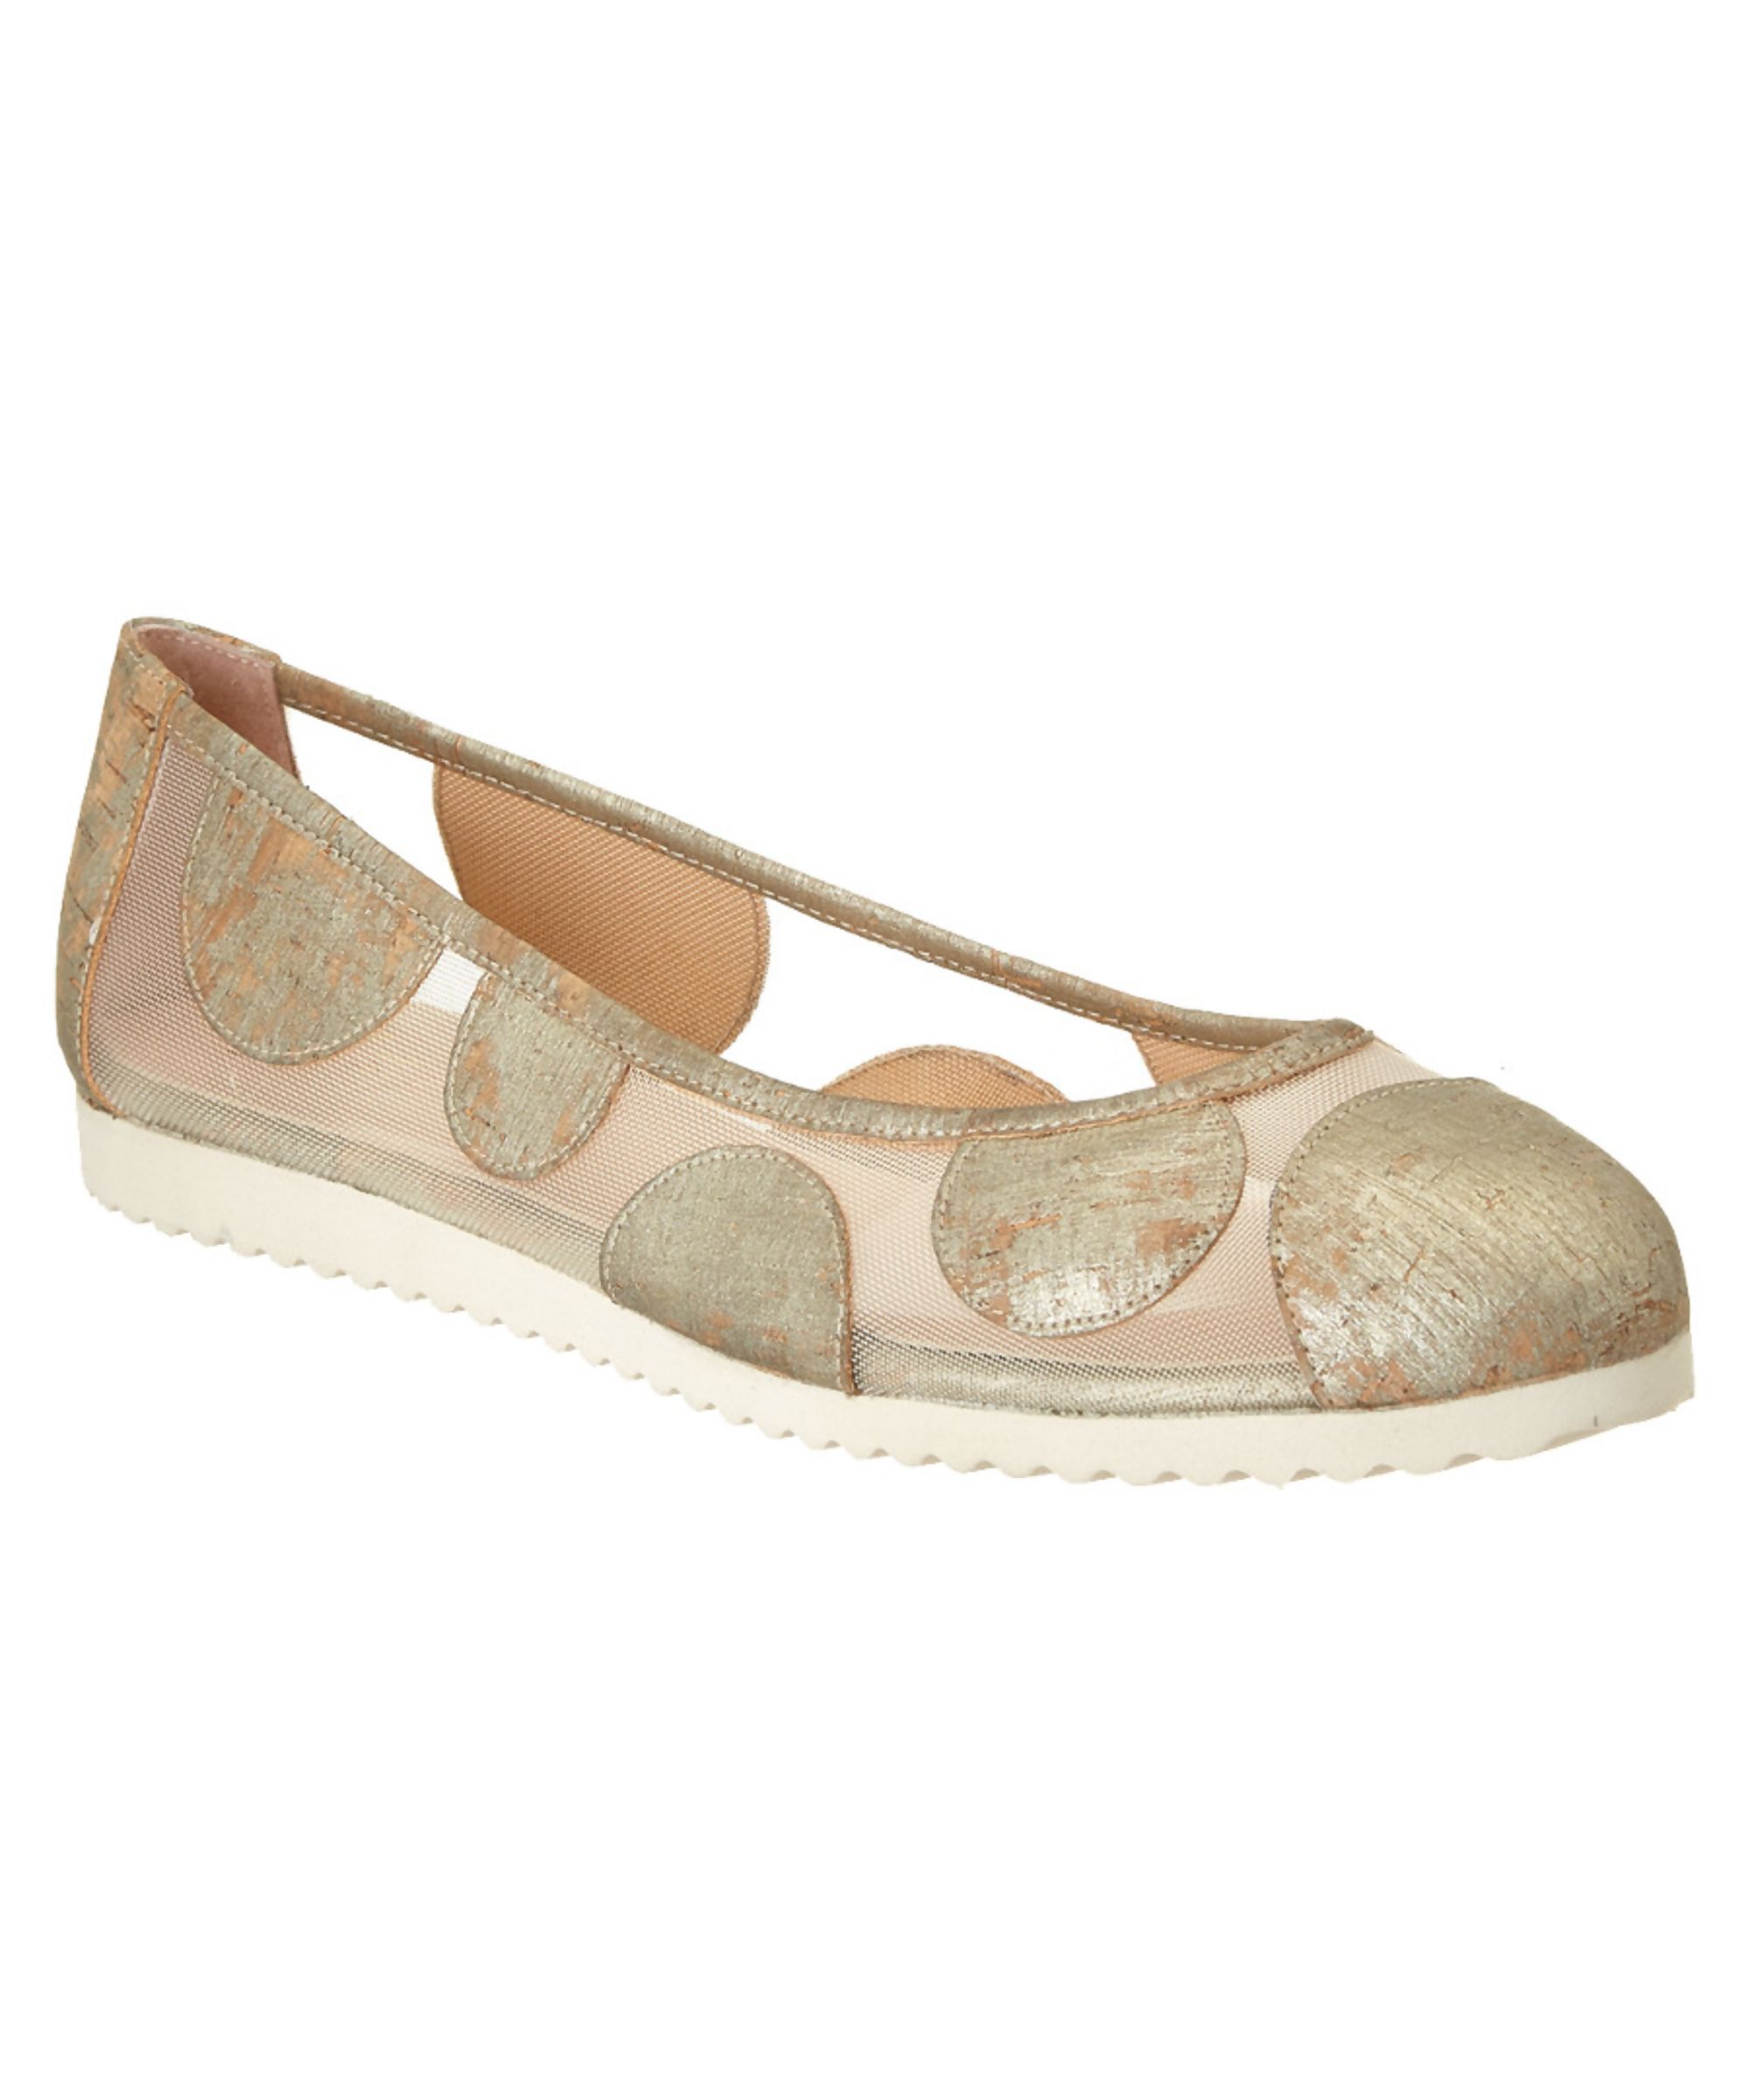 FRENCH SOLE   French Sole Retro Cork Flat #Shoes #Flats #FRENCH SOLE